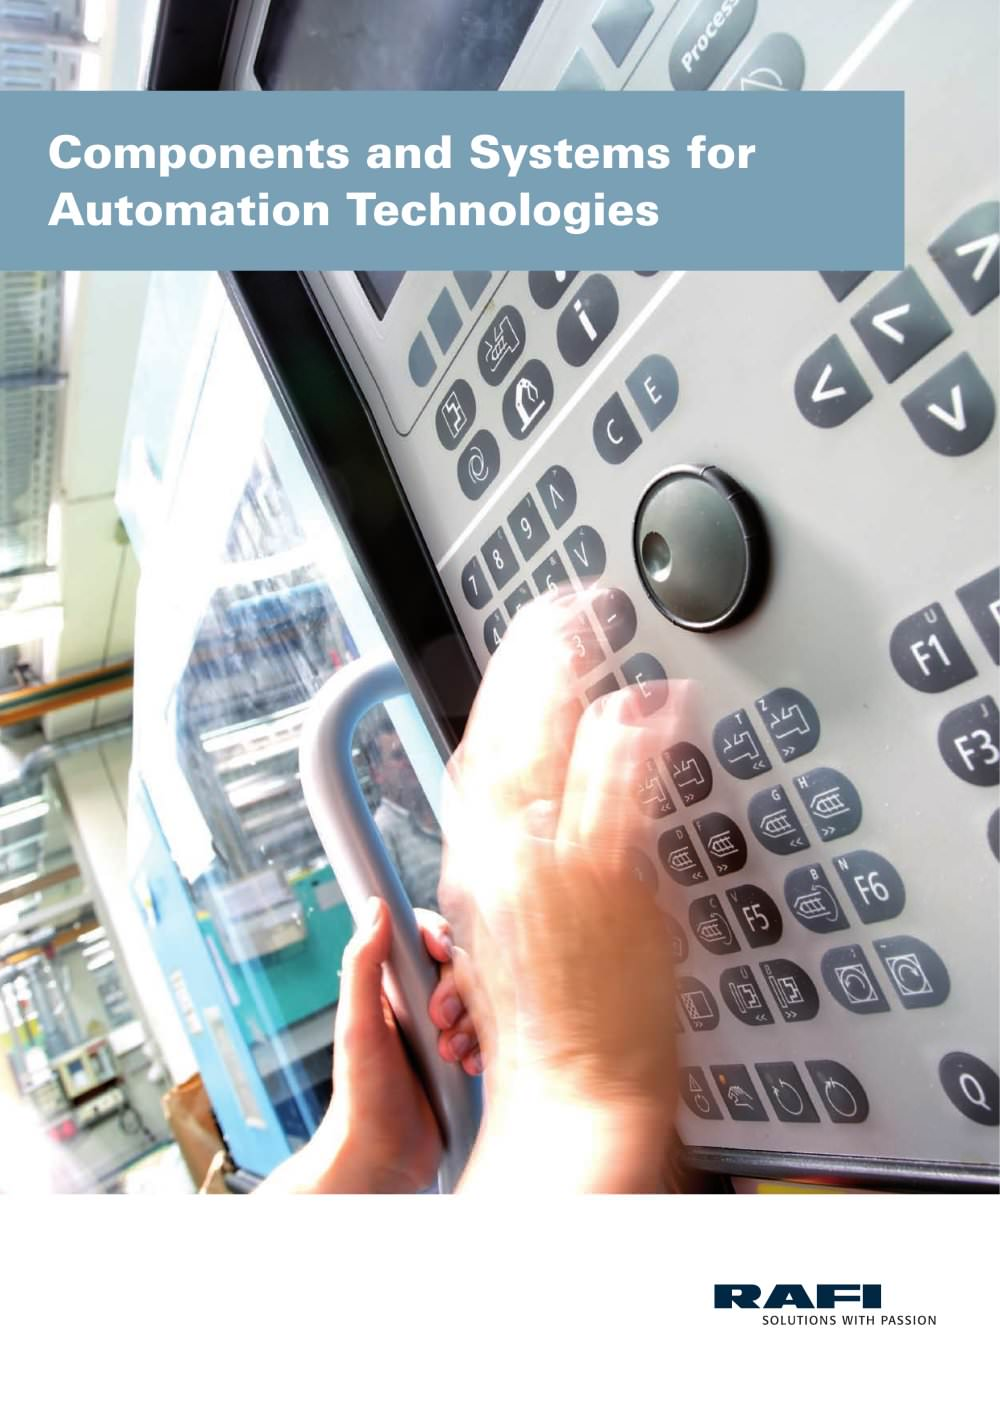 Components and Systems for Automation Technologies - RAFI GmbH & Co